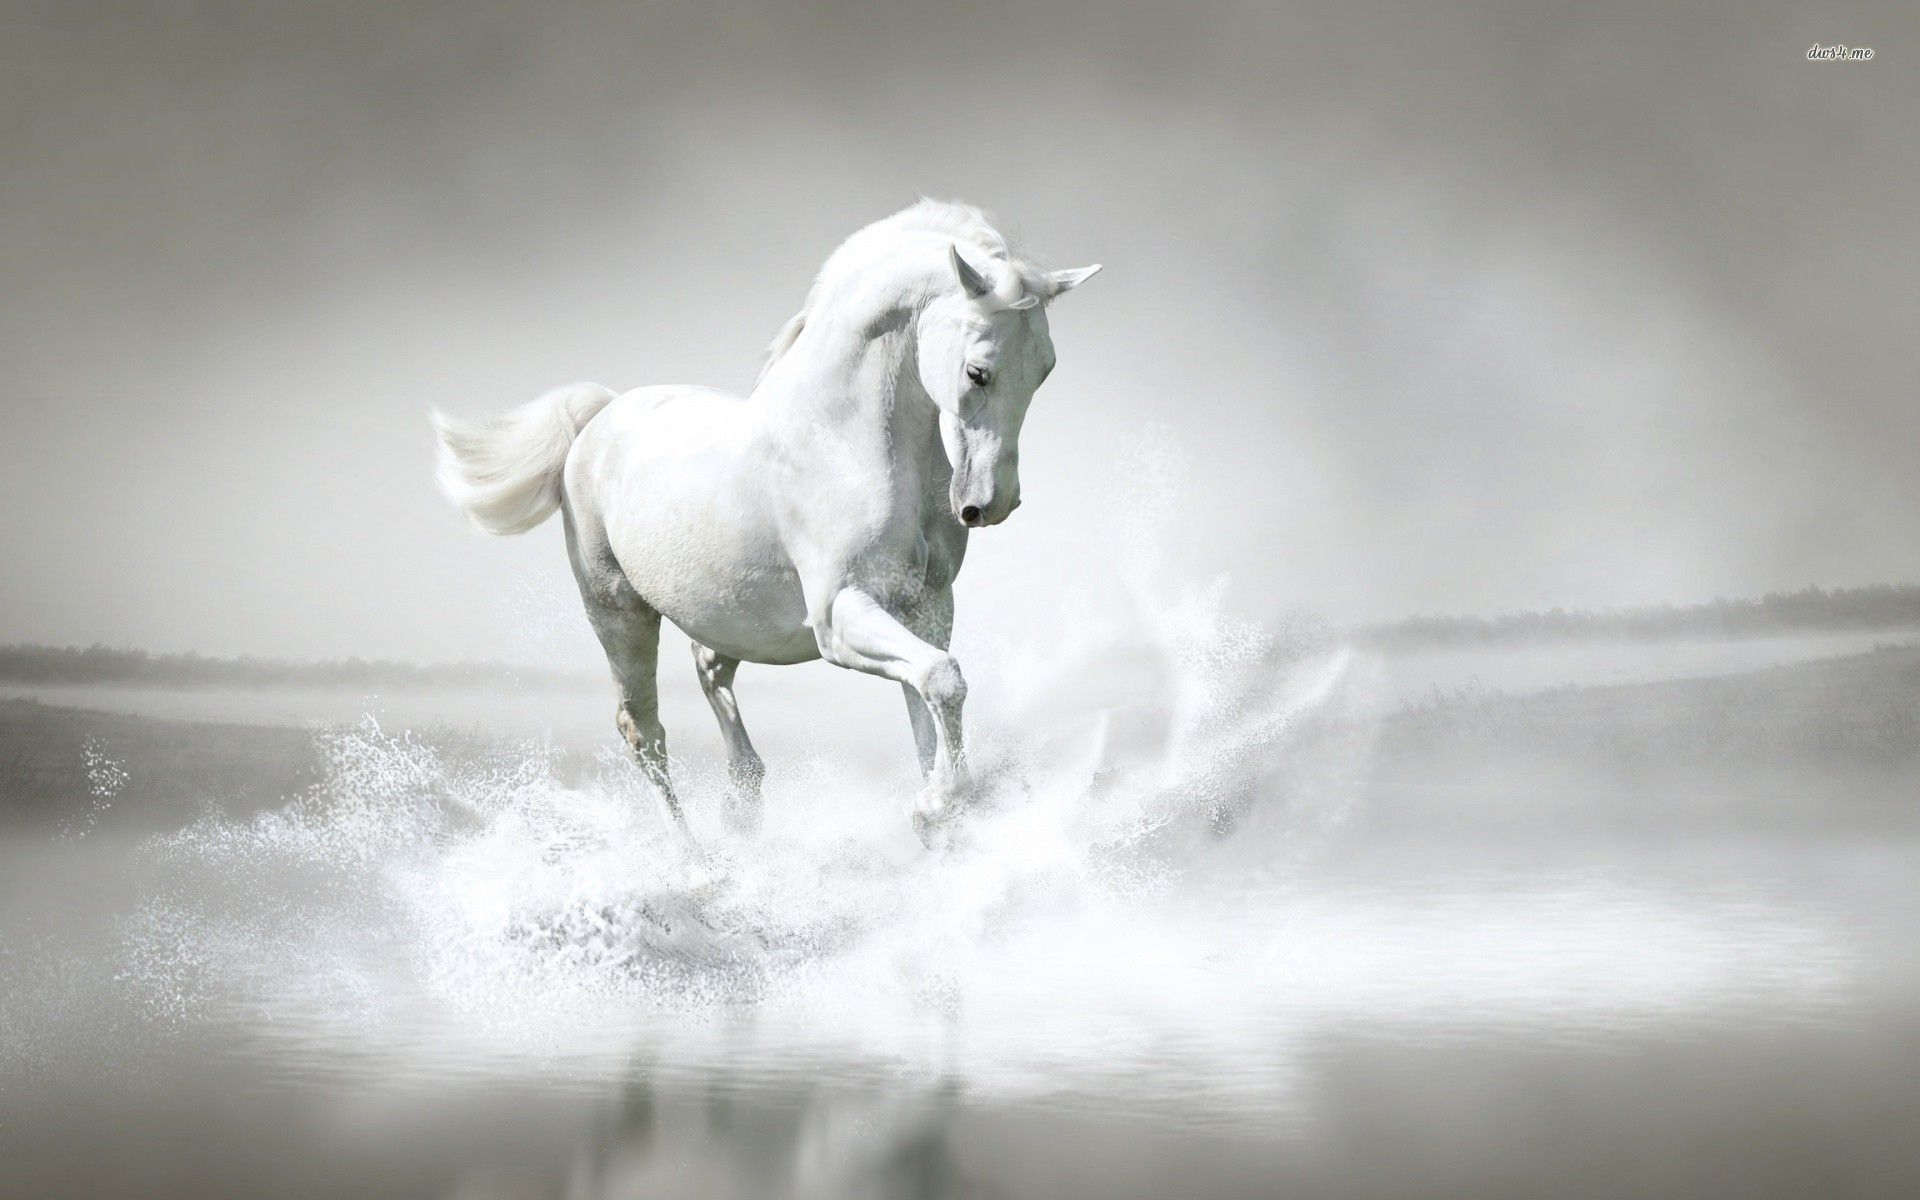 Horse wallpapers hd Pictures Free Download  HD Walls 1920x1200